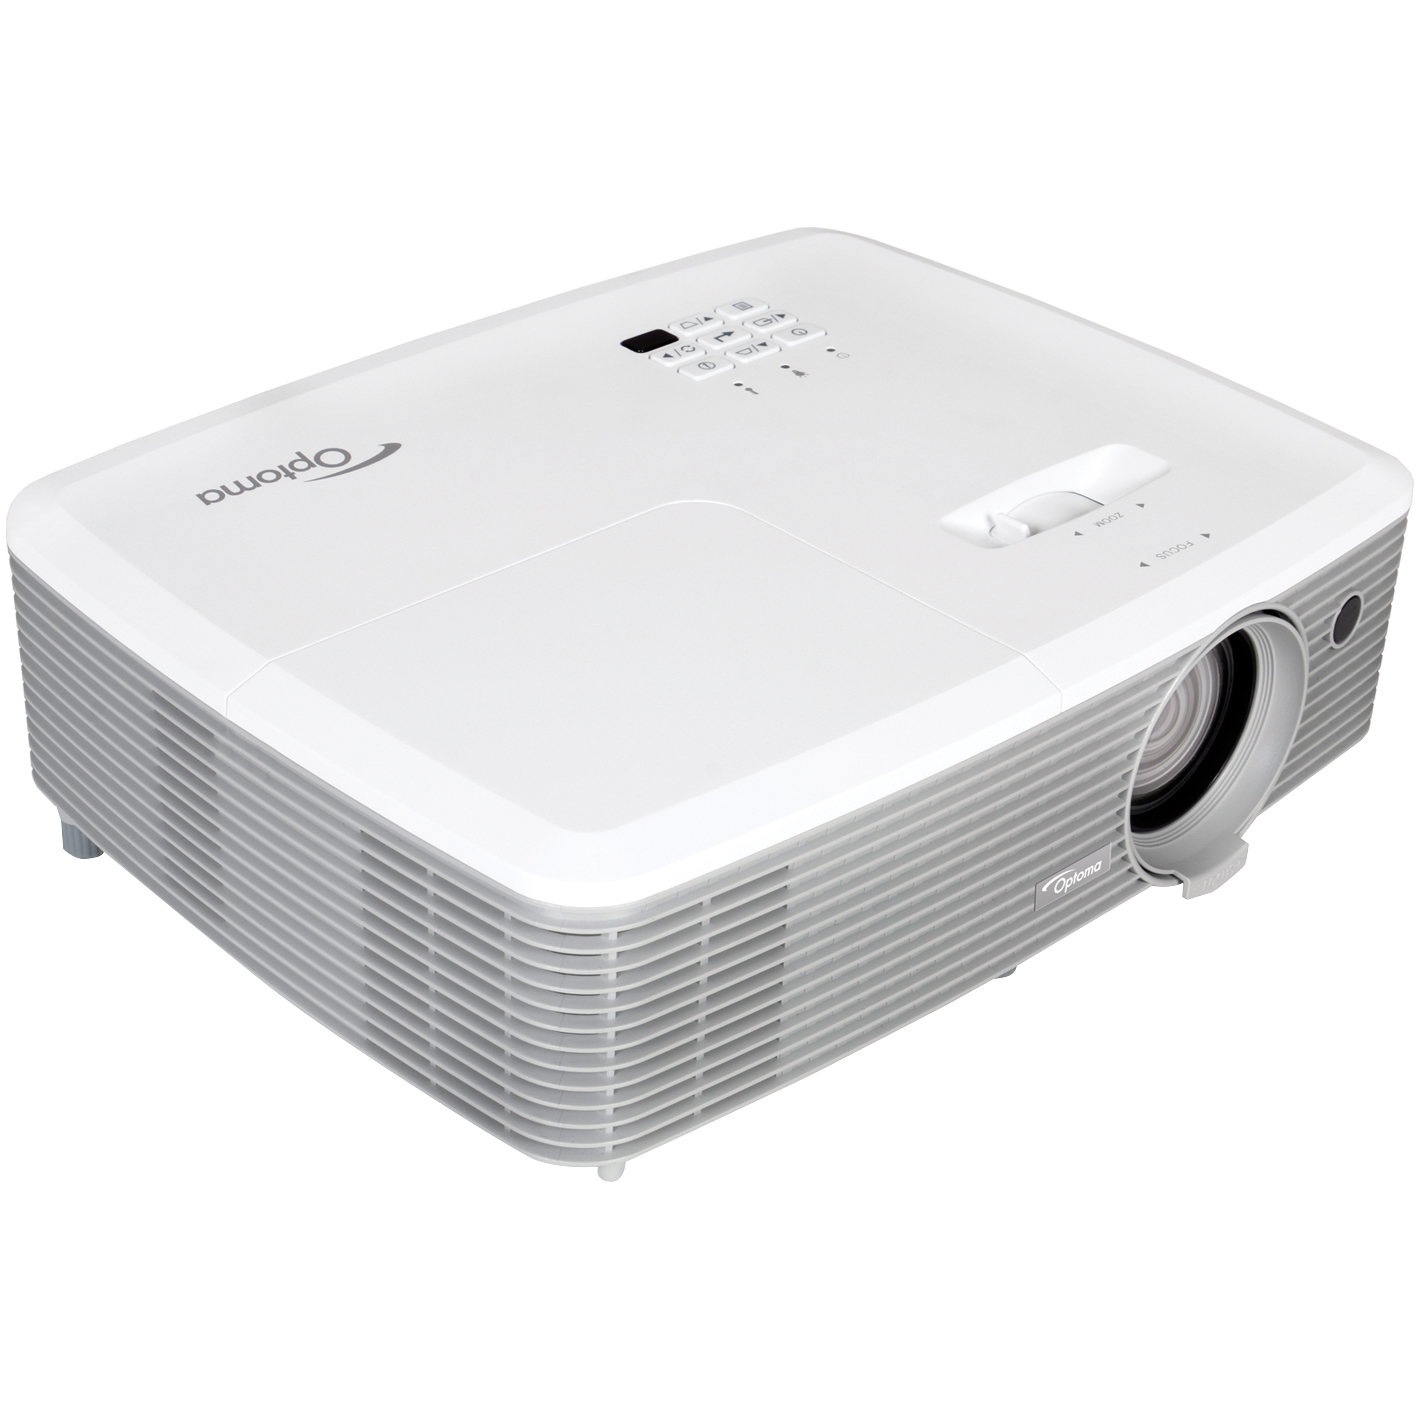 Optoma W400+ data projector 4000 ANSI lumens DLP WXGA (1280x800) 3D Desktop projector Grey, White